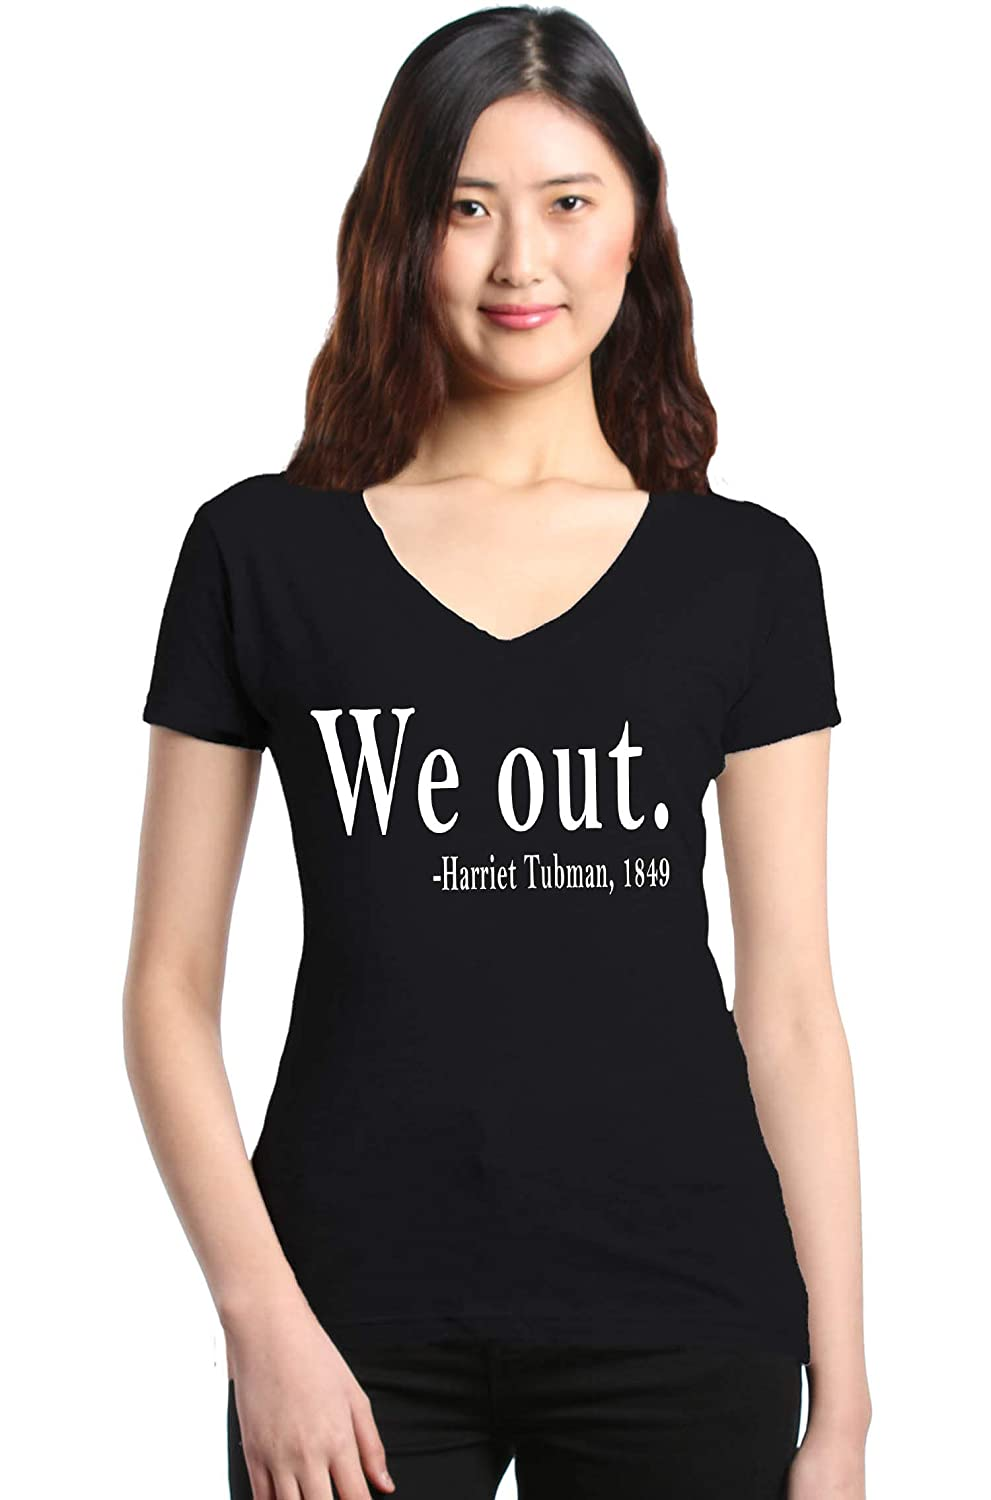 1849 Women/'s Tank Top Black History Tee Shop4Ever We Out Harriet Tubman